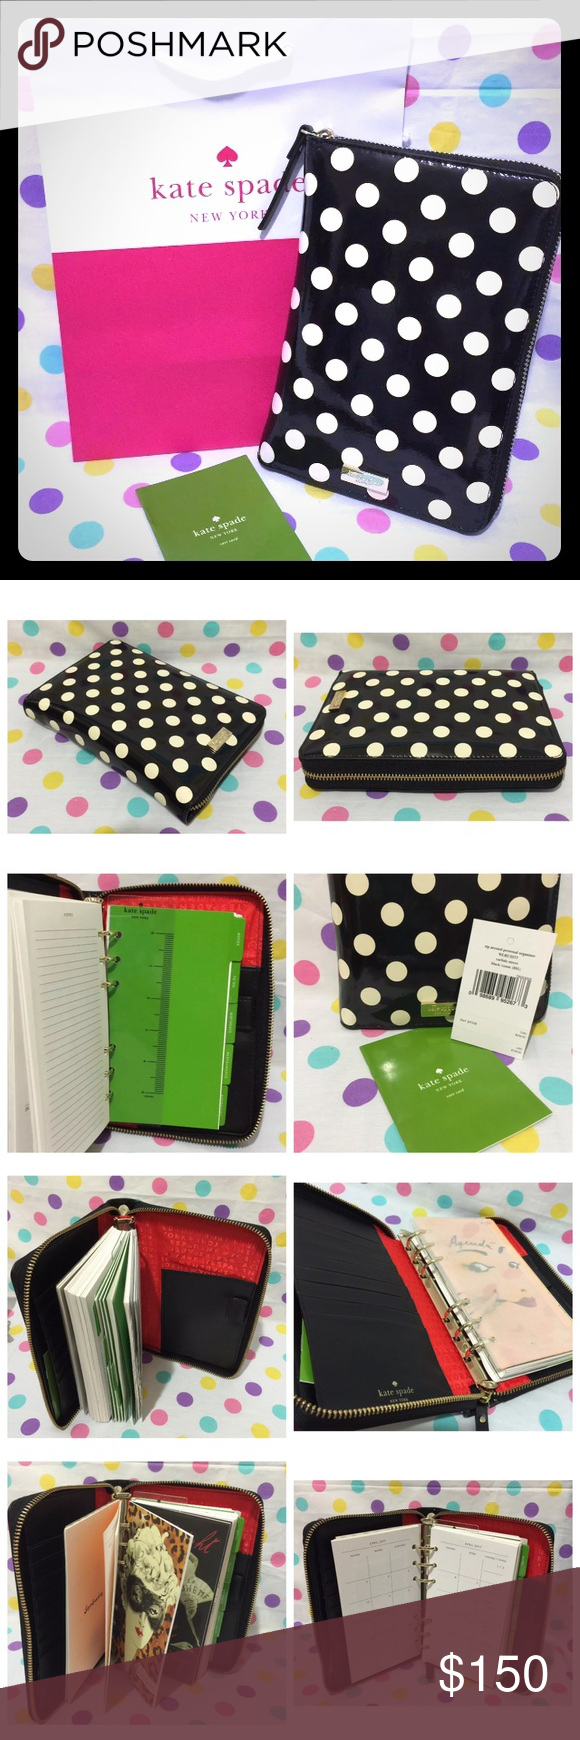 Kate Spade Personal Organizer Planner Carlisle St AUTHENTIC KATE SPADE CARLISLE STREET PATENT BLACK AND CREAM POLKA DOT LEATHER  ZIP AROUND PERSONAL ORGANIZER/PLANNER  FOR AUGUST 2016 - DECEMBER 2017  INSERTS INCLUDE NOTES, TO DO, BIRTHDAYS,RESTAURANTS, AND ADDRESSES!  Patent cowhide with smooth cowhide trim custom woven lining 14-karat light gold plated hardware zip around closure slide pocket and pen slot 8 credit card slots six ring binder Please use the offer button to bargain on the…